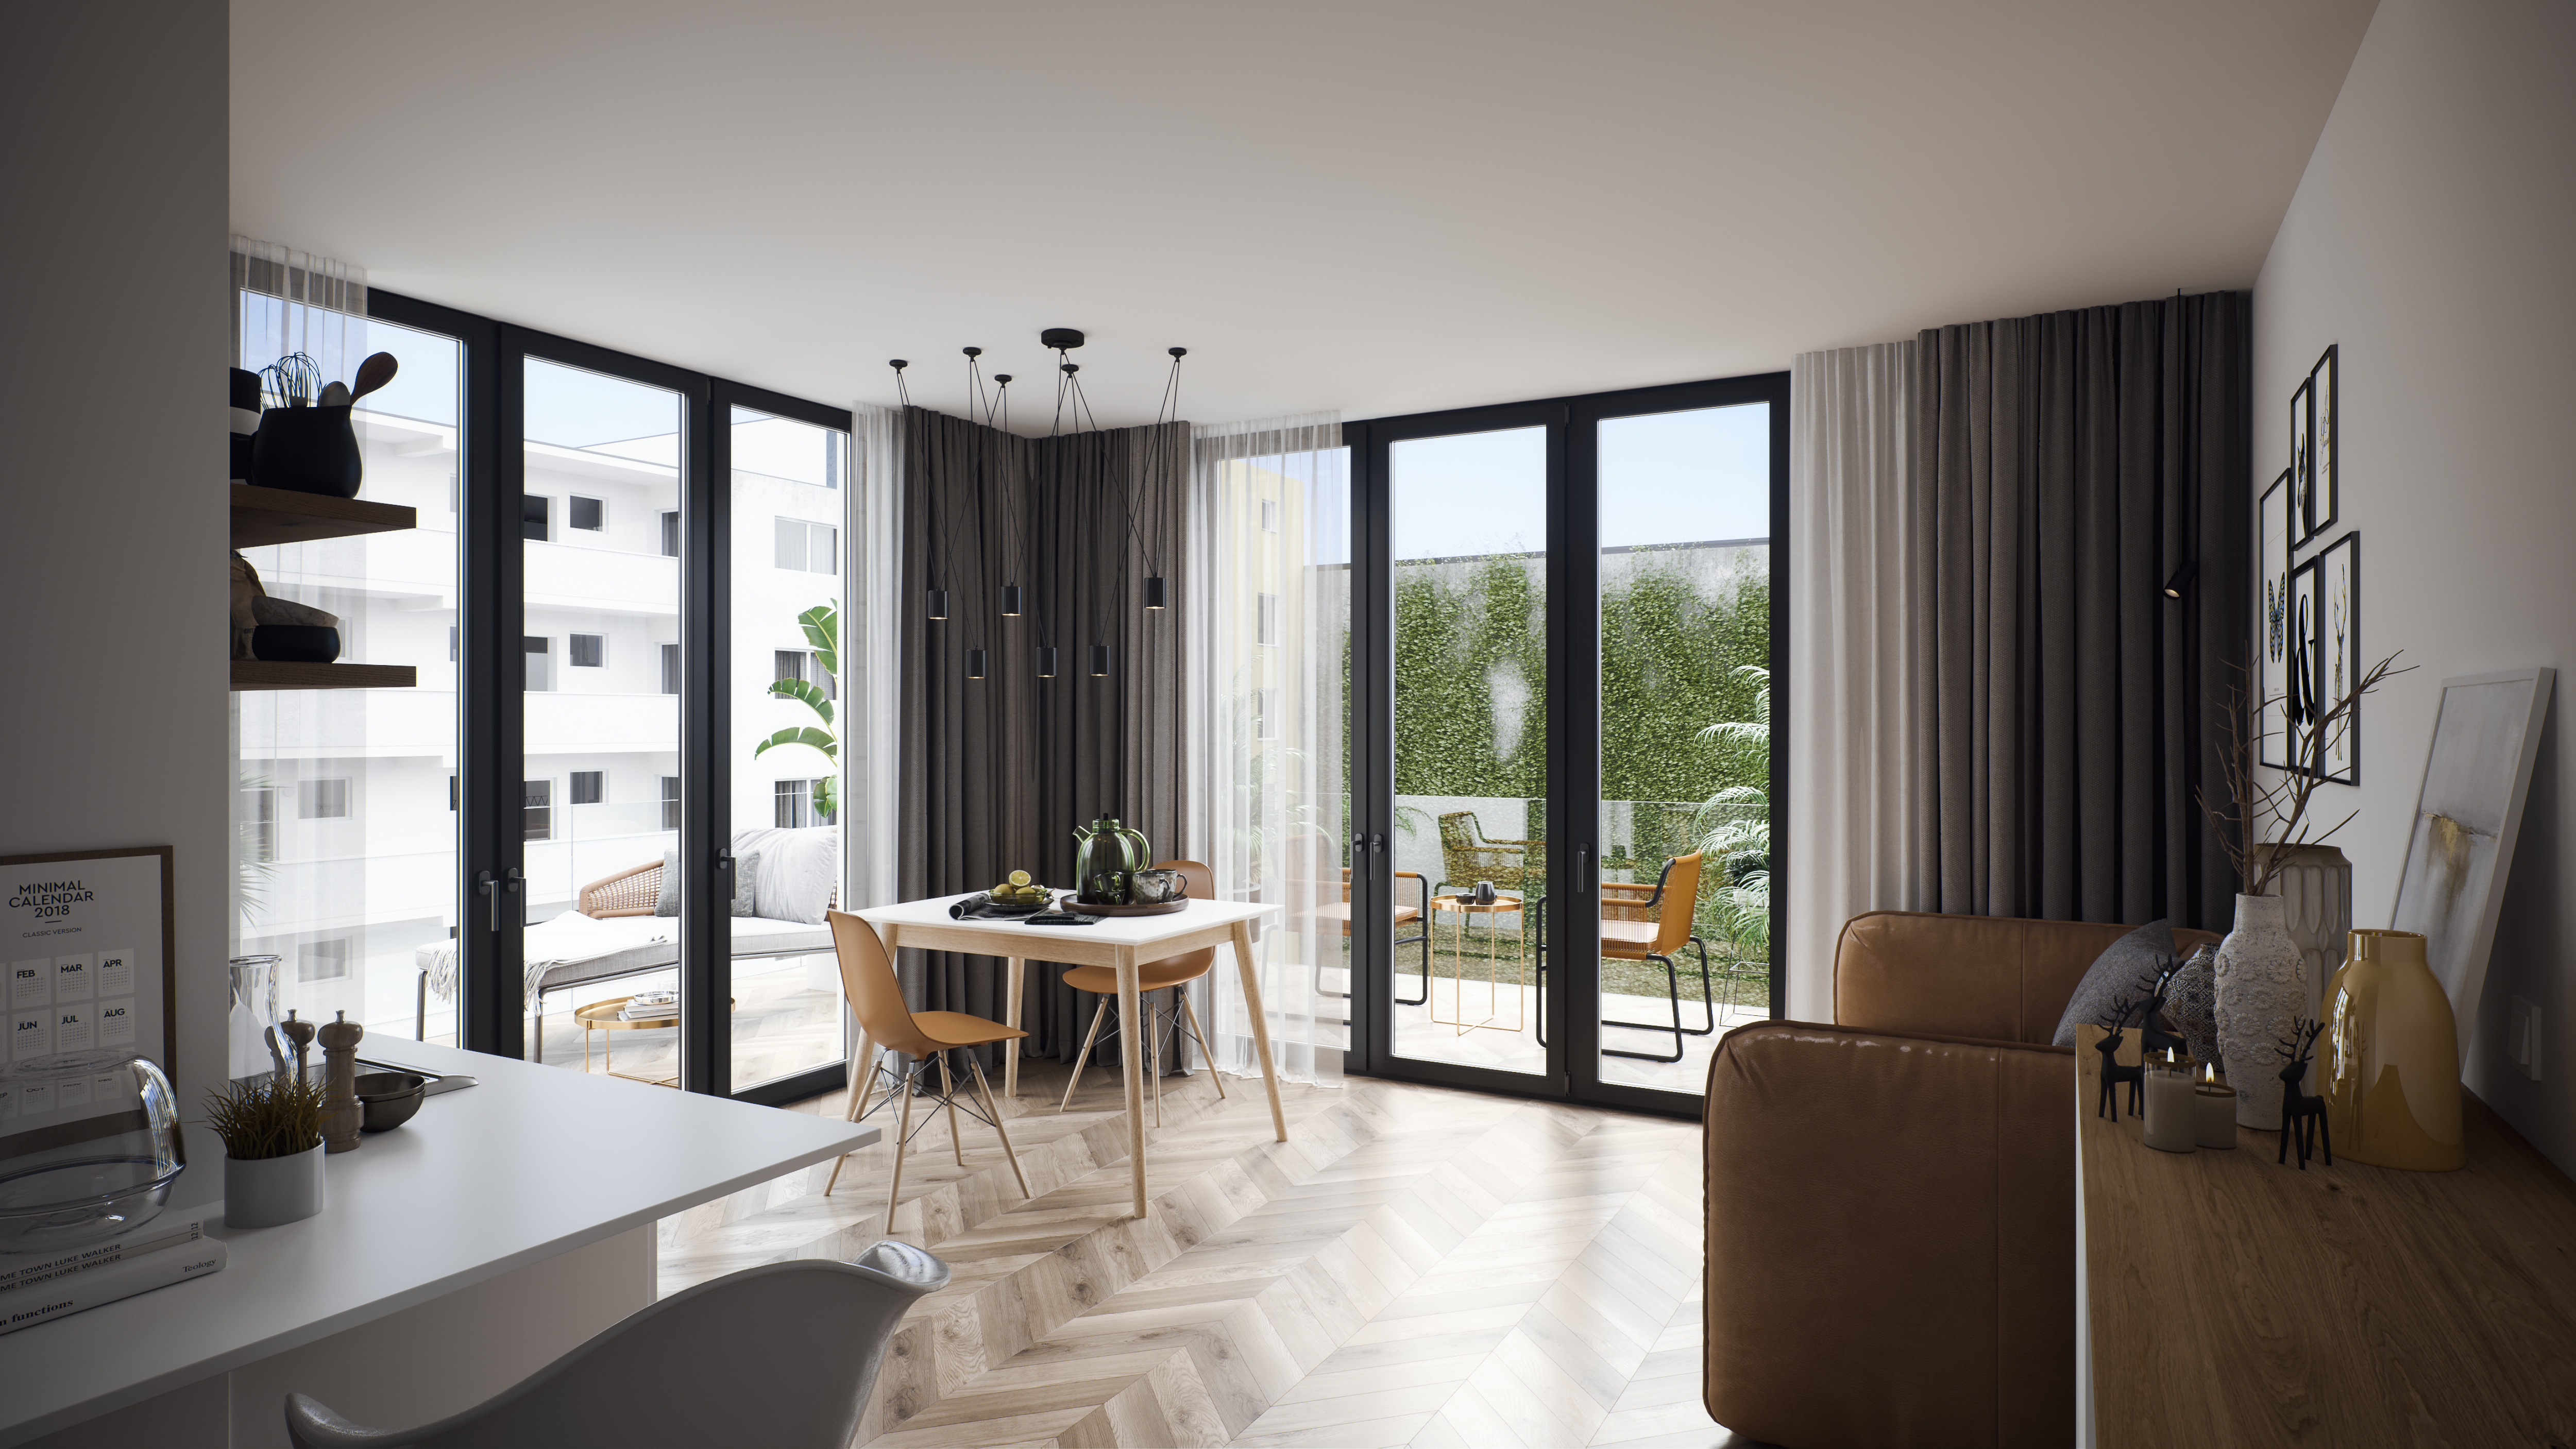 Studio apartments in Berlin: your smart investment